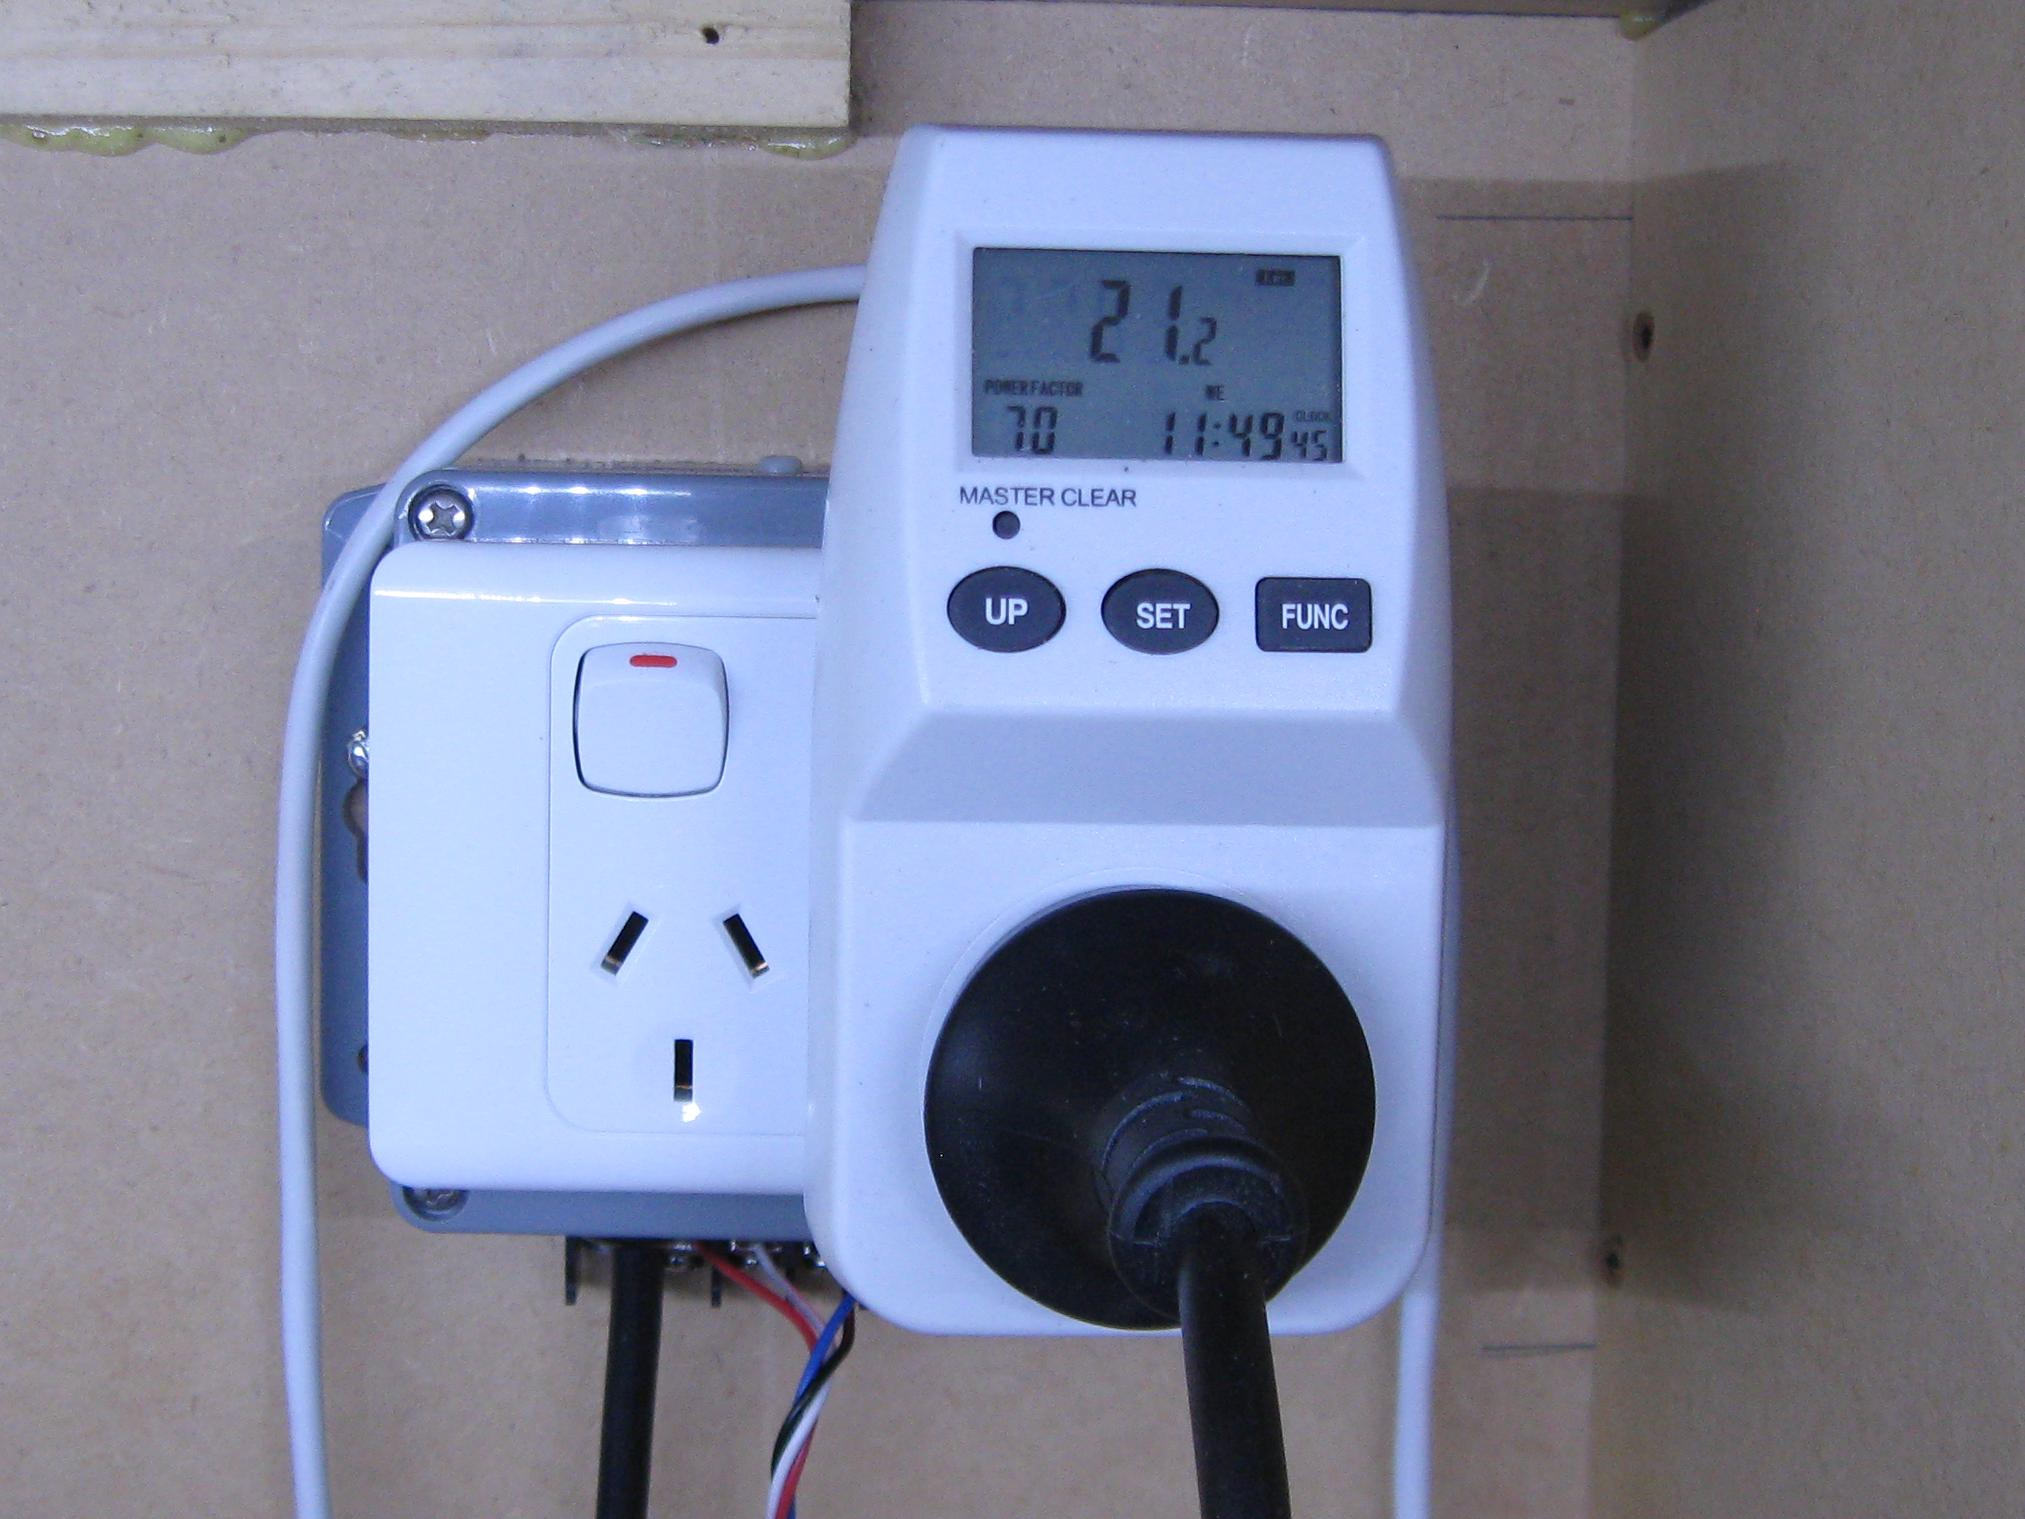 Computer Power Meter : Power useage meter home and business pmb nz rcbeacon